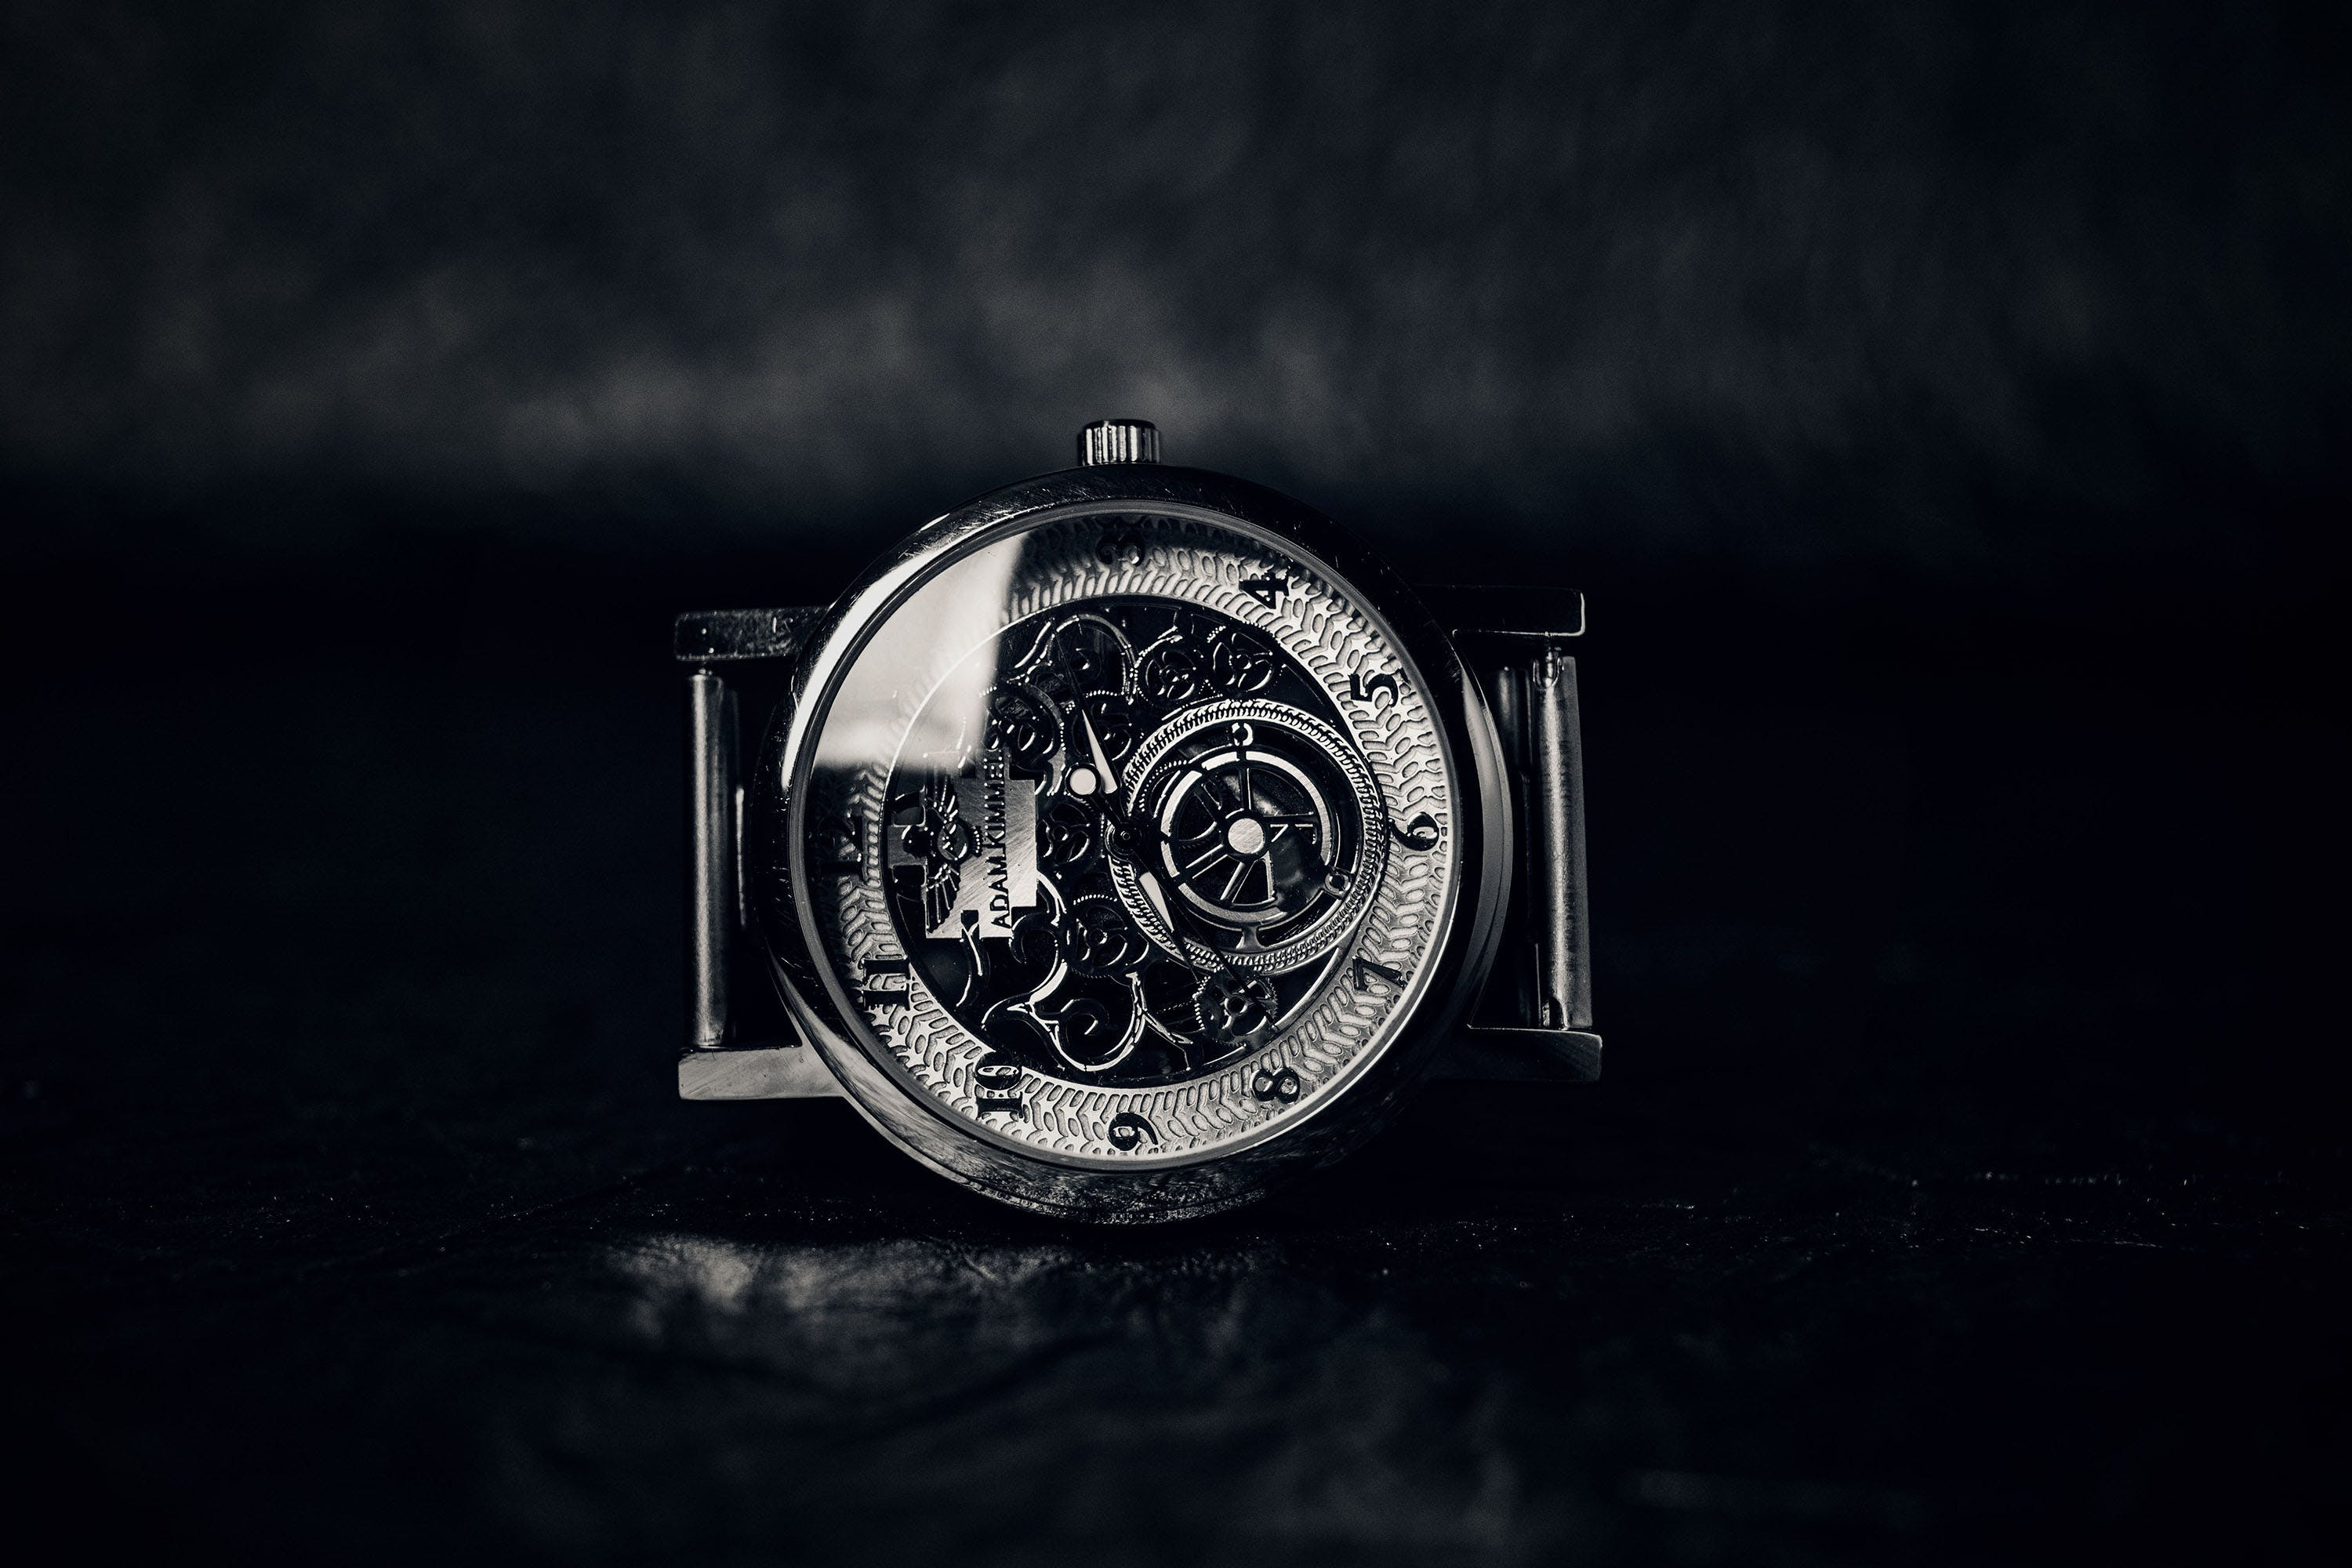 Analogue, antique, black-and-white